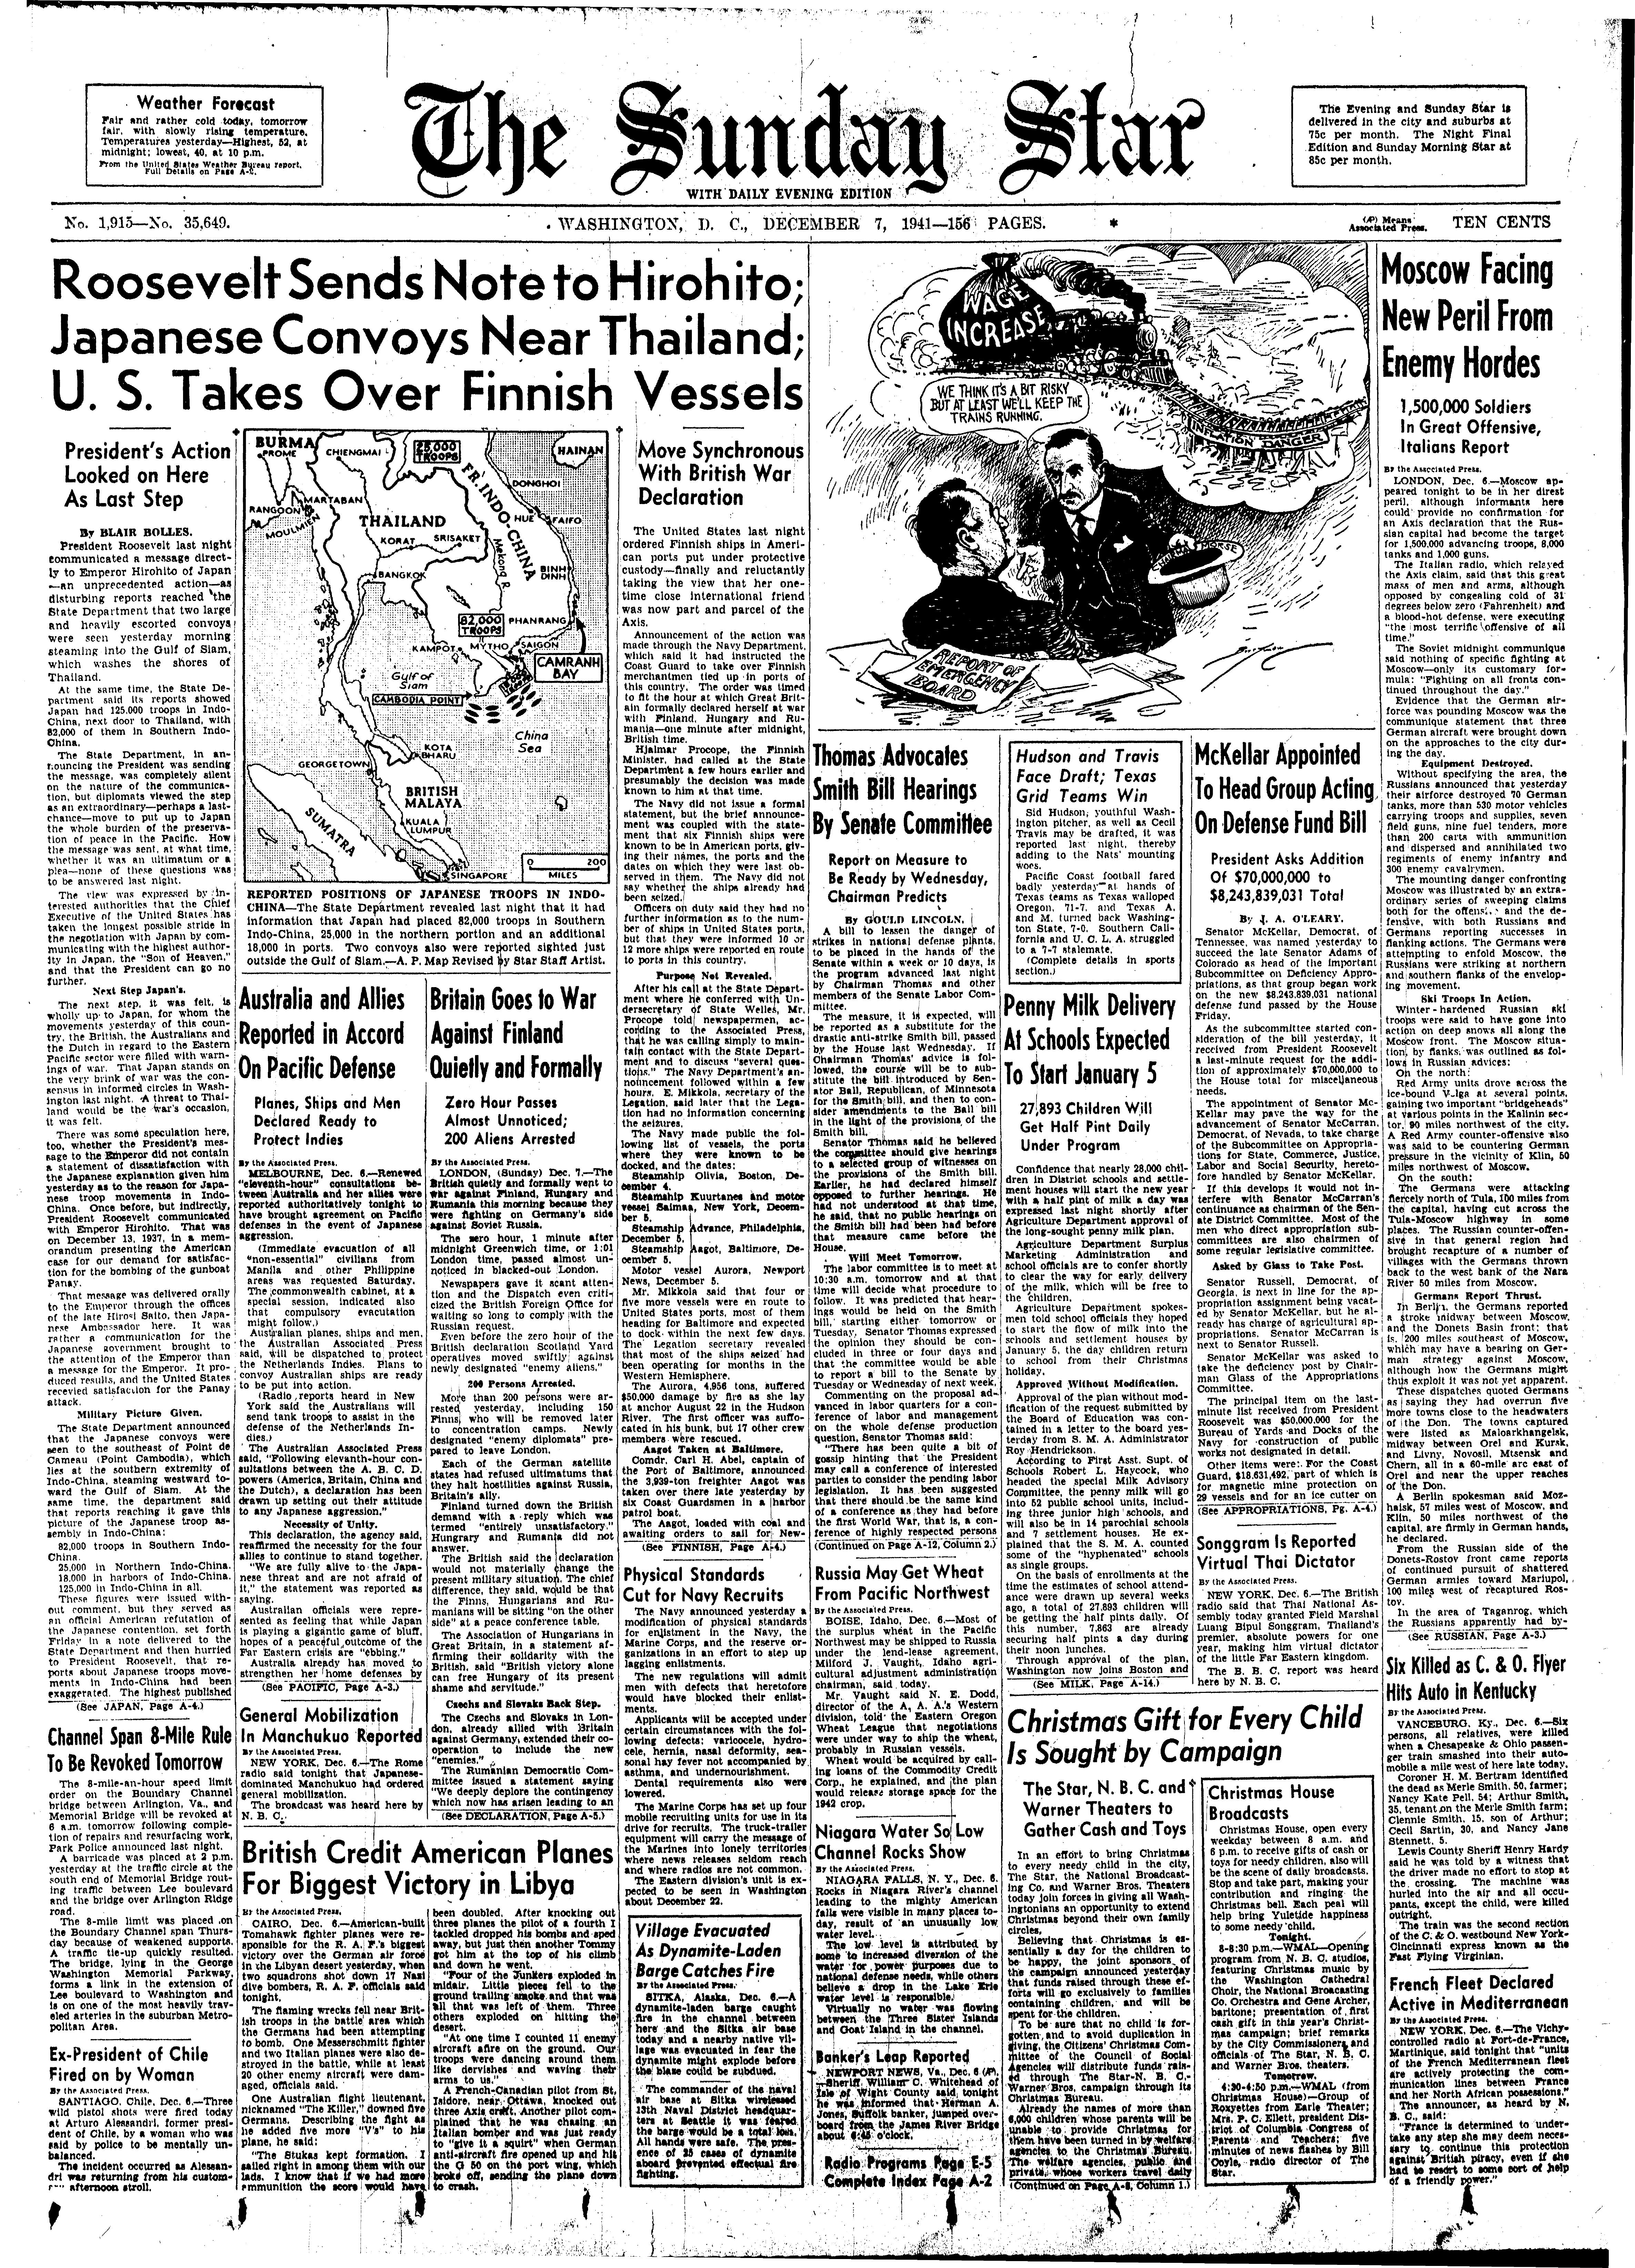 Washington, D.C. newspaper's front page on December 7, 1941